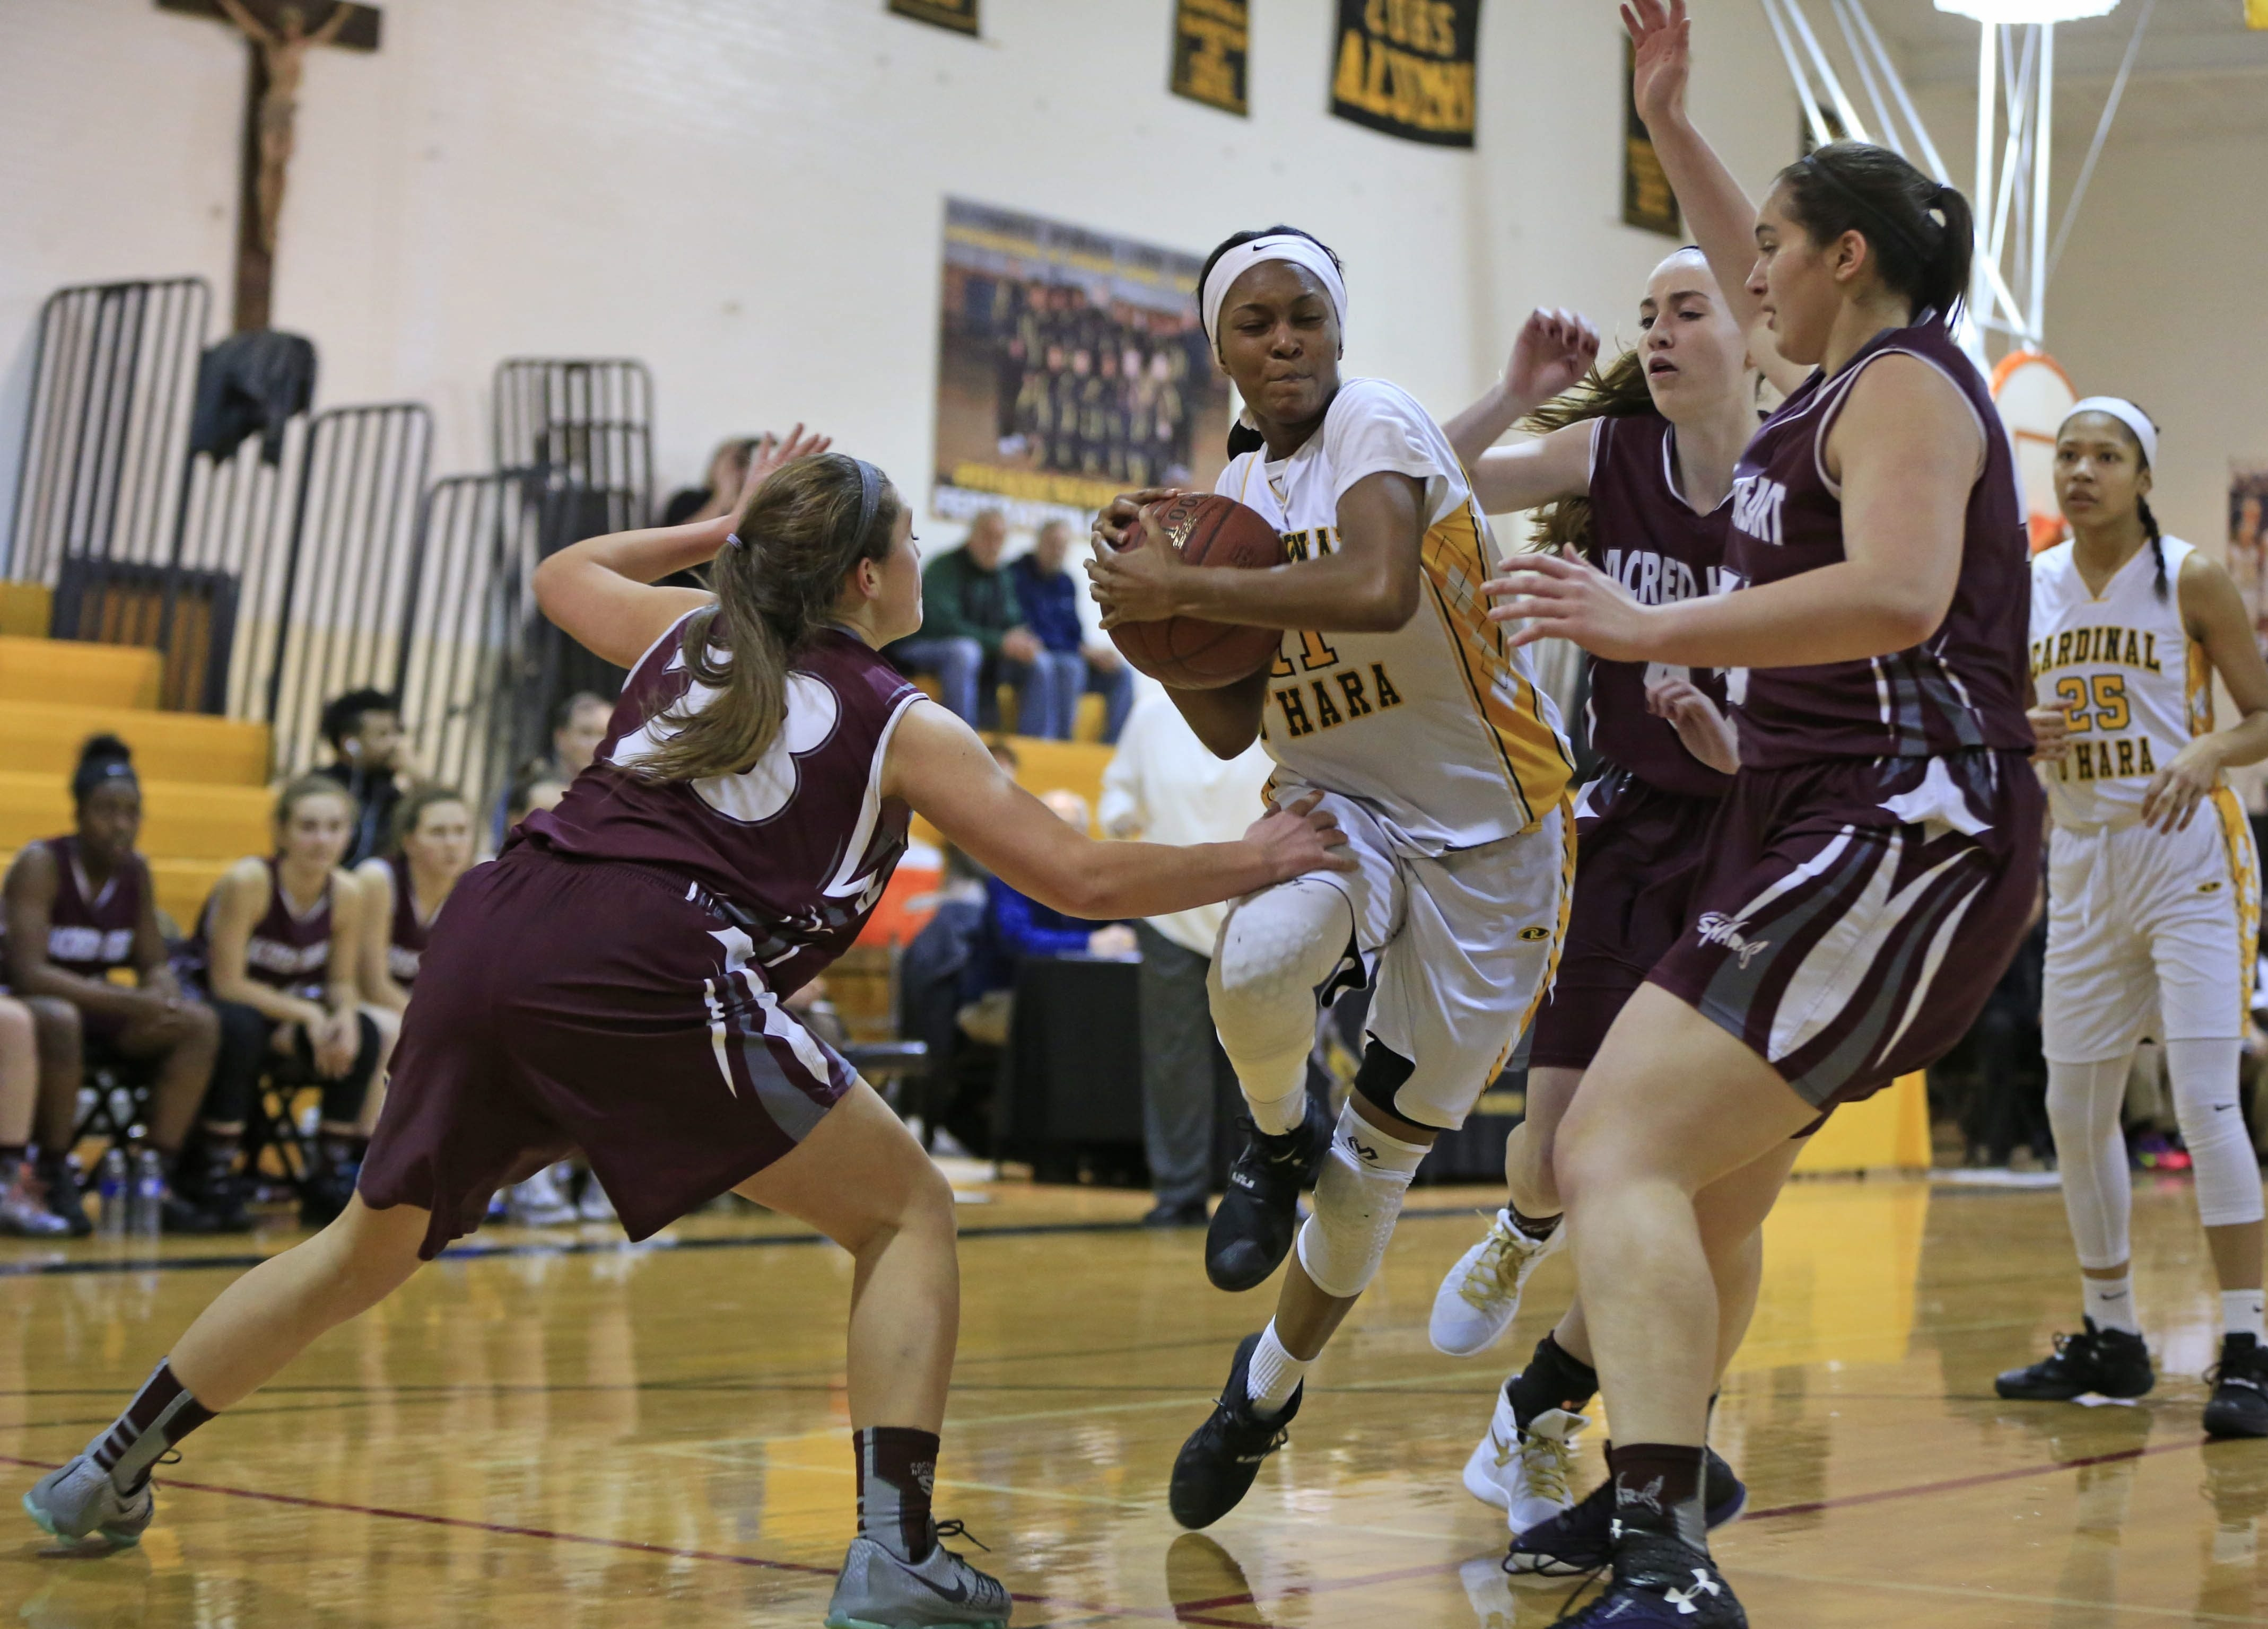 Anndea Zeigler and her Cardinal O'Hara basketball teammates may have to compete against teams from larger schools in the state postseason playoffs.